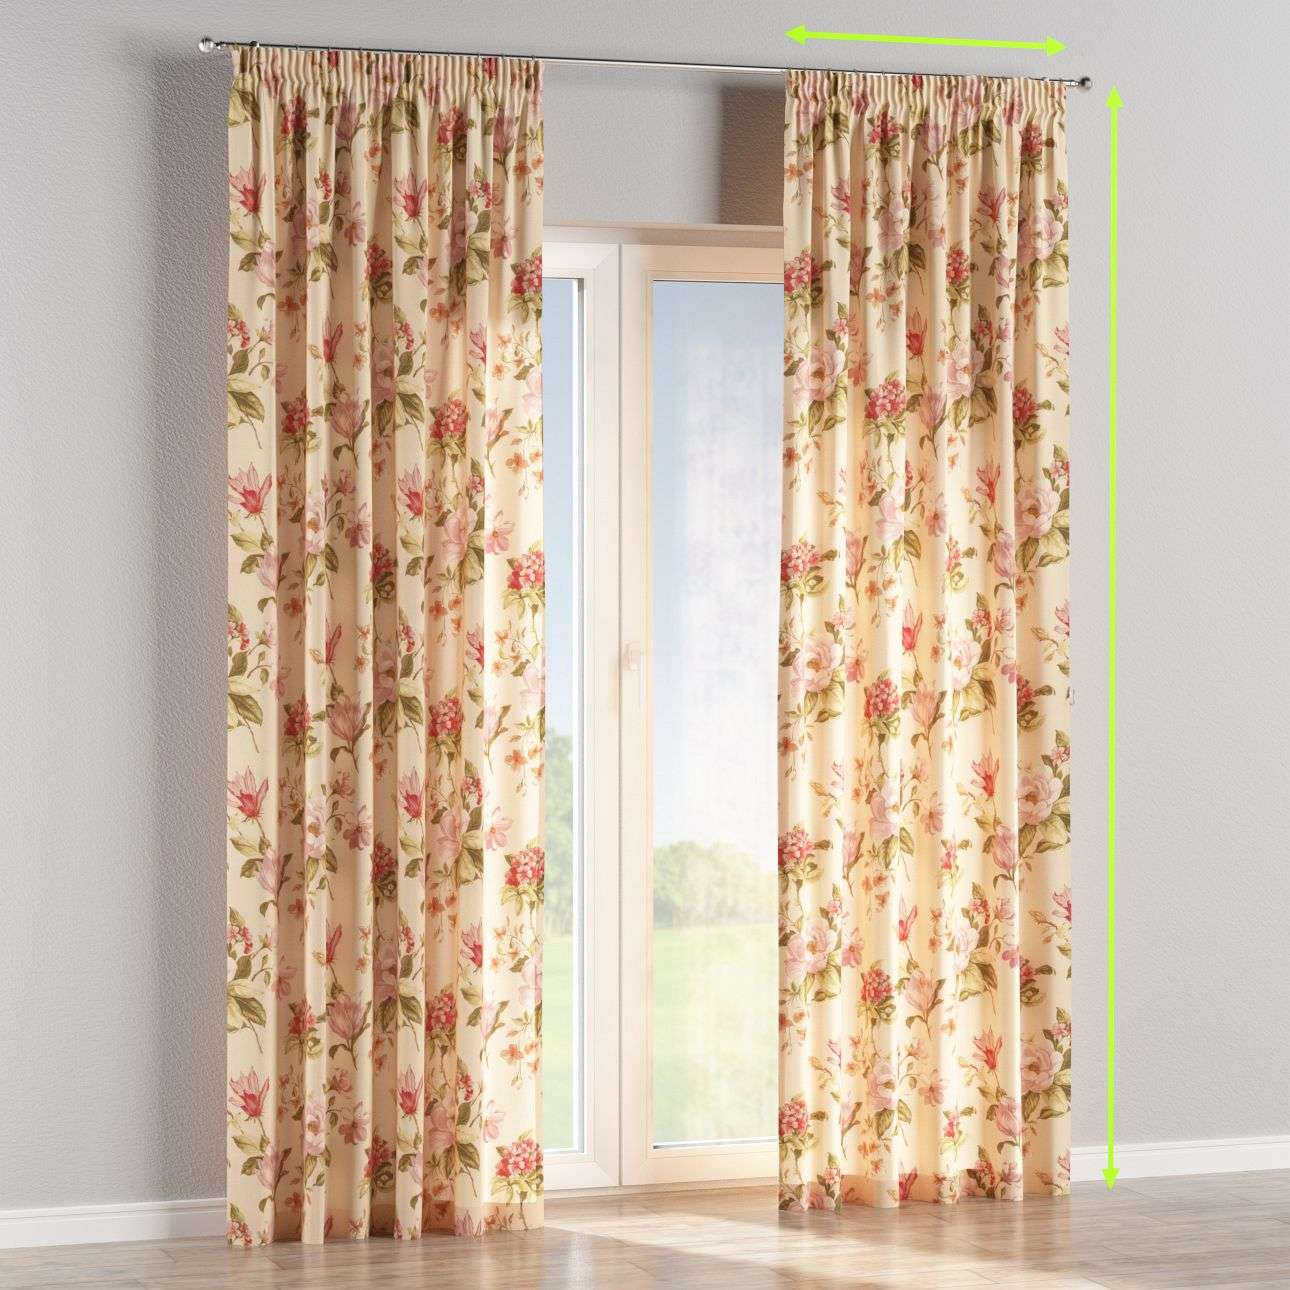 Pencil pleat lined curtains in collection Londres, fabric: 123-05